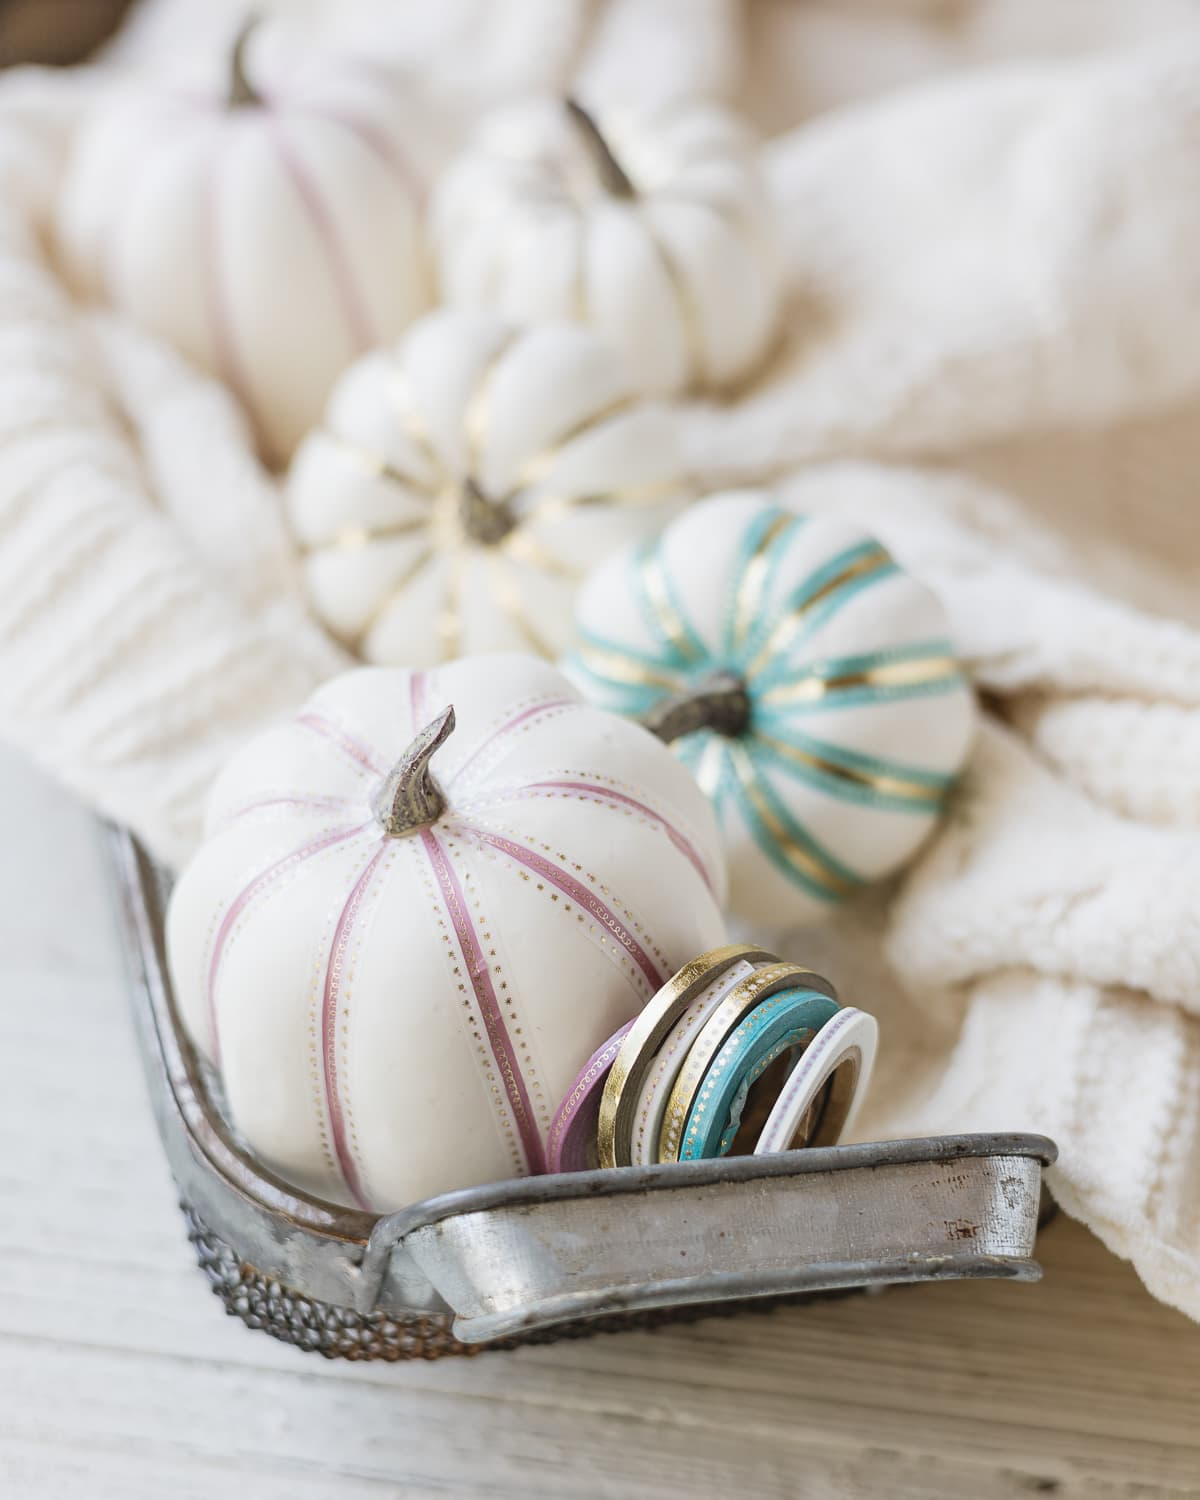 White faux pumpkins decorated with thin washi tape and arranged in a metal basket.